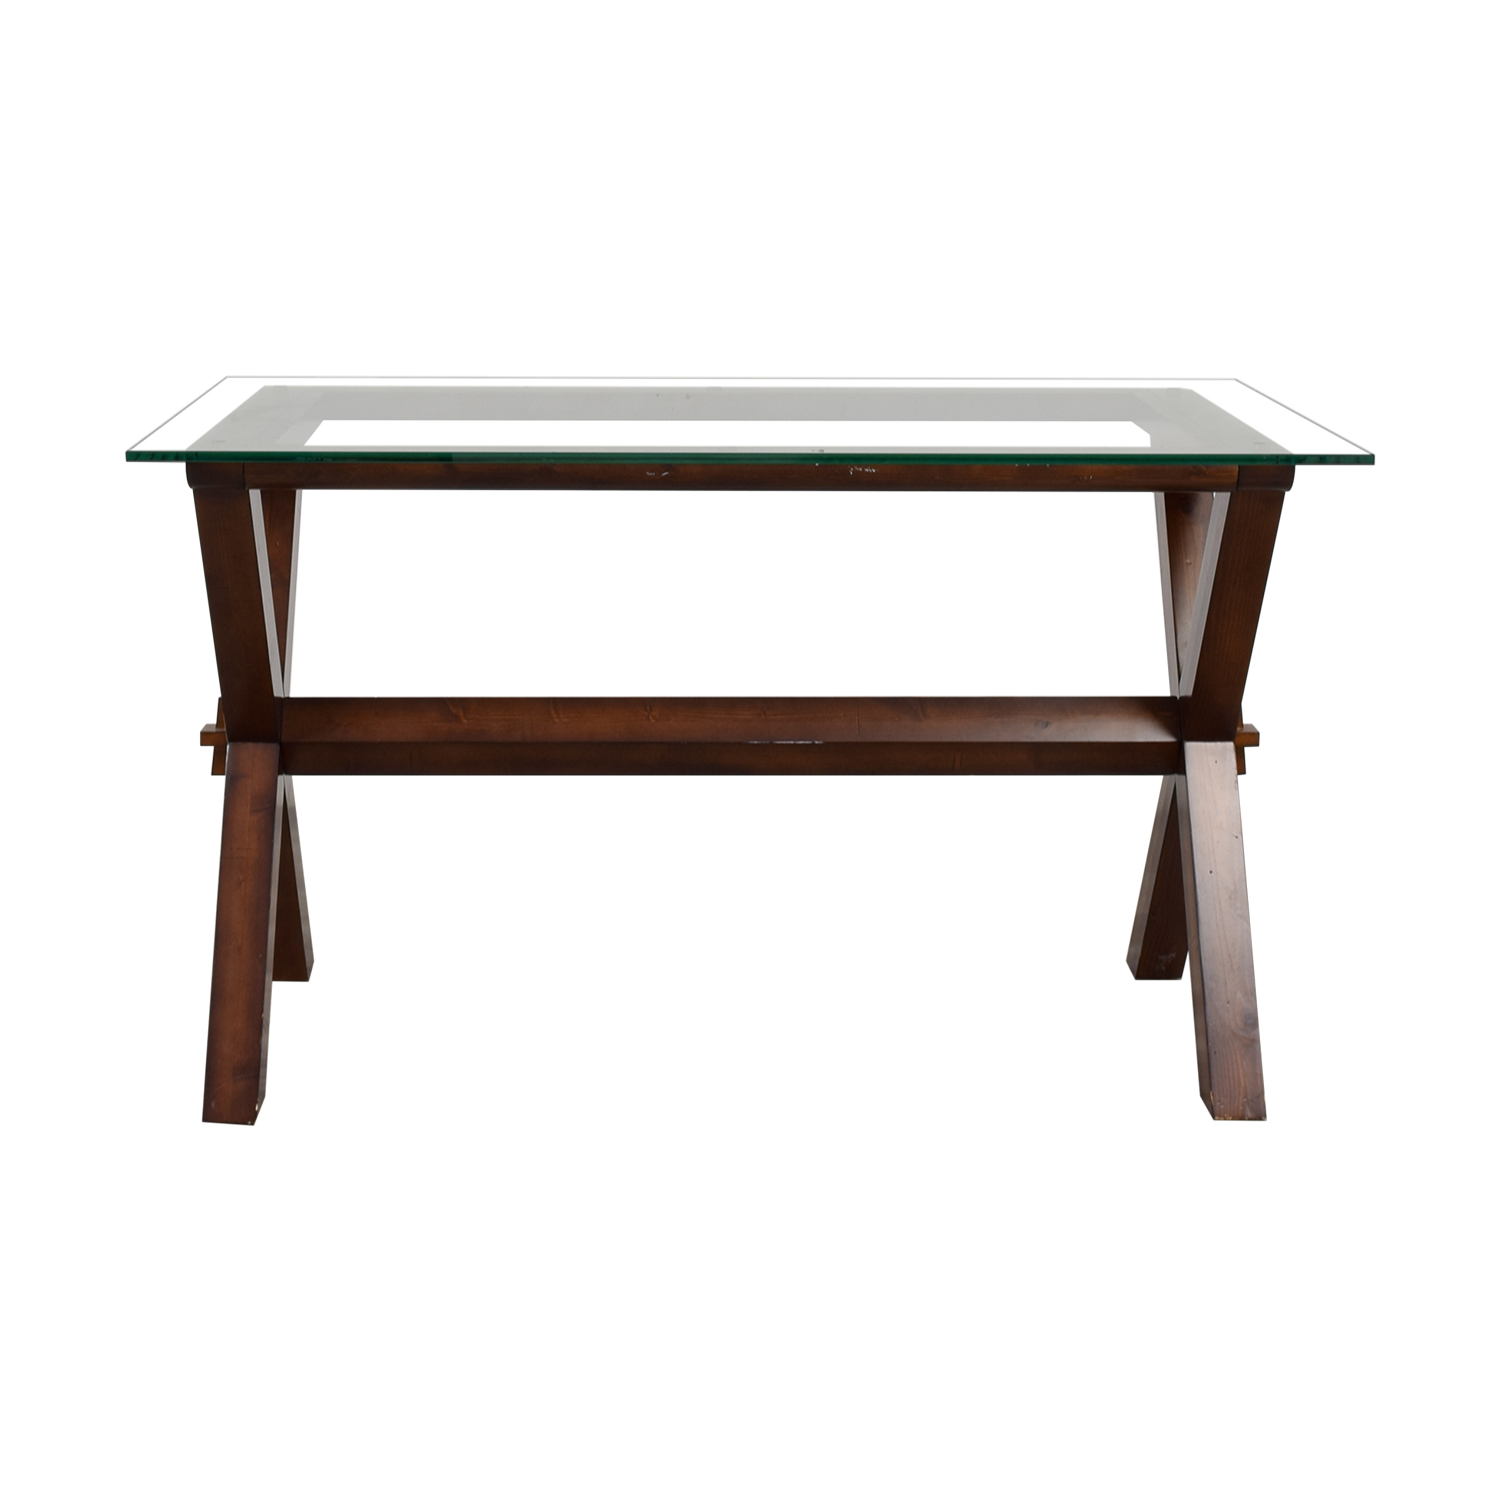 5% OFF - Pottery Barn Pottery Barn Glass and Wood Desk / Tables